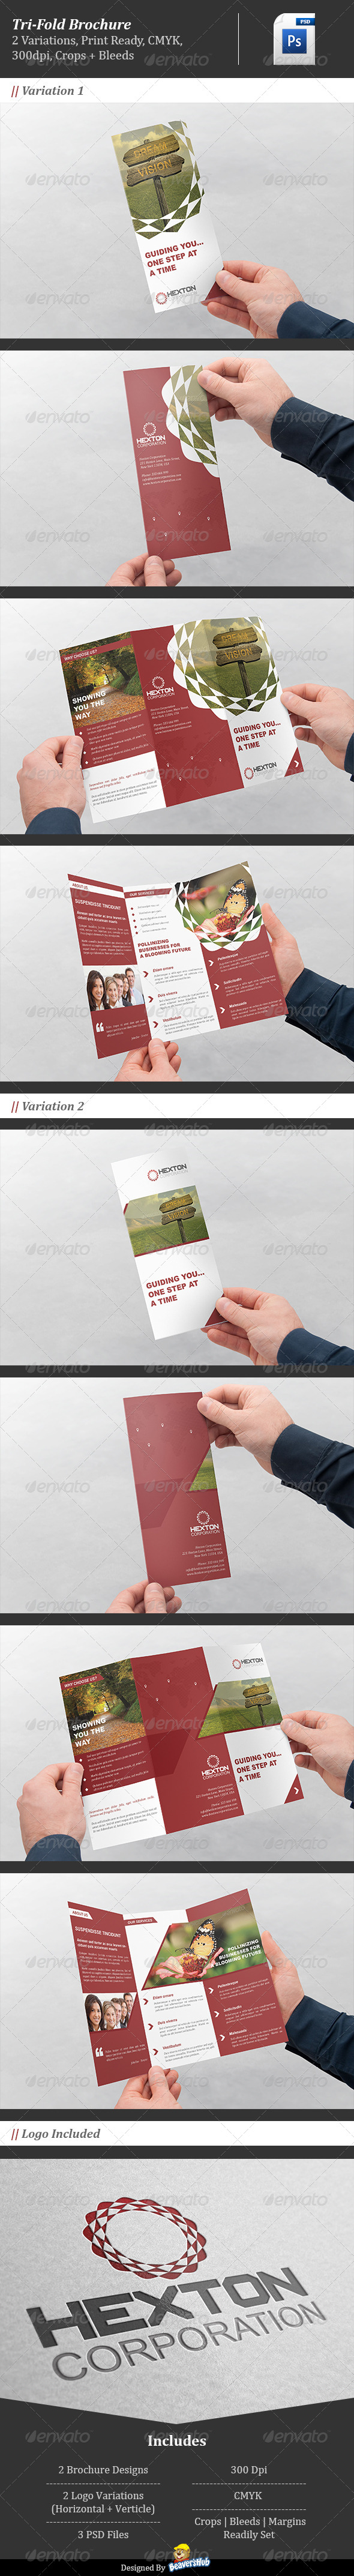 Corporate Trifold Brochure : Hexton Corporation - Corporate Brochures